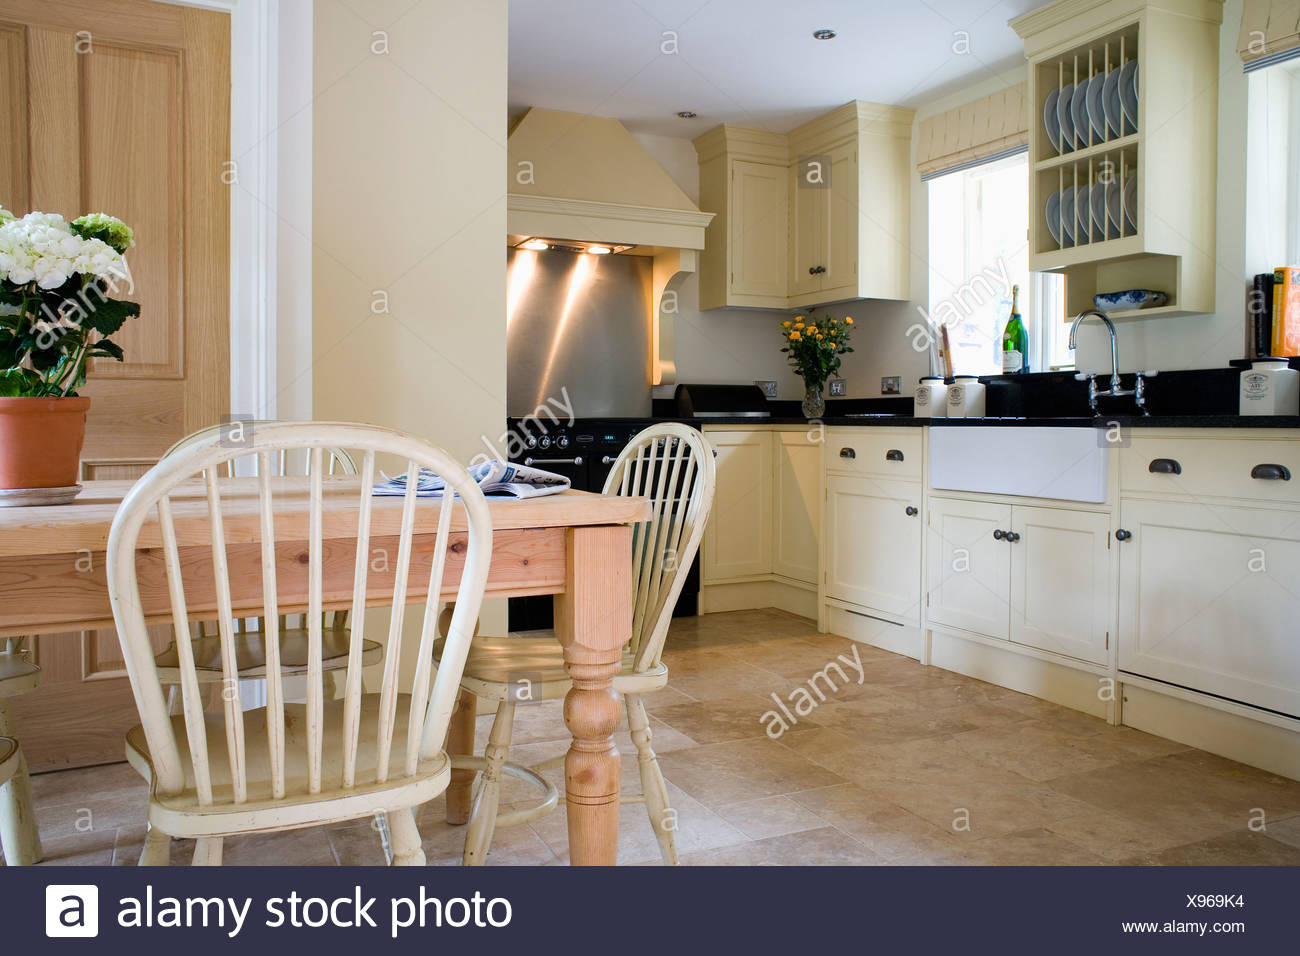 Ordinaire Pale Wood Windsor Chairs And Pine Table In Traditional Country Kitchen With  Cream Fitted Units And Travertine Tiled Floor